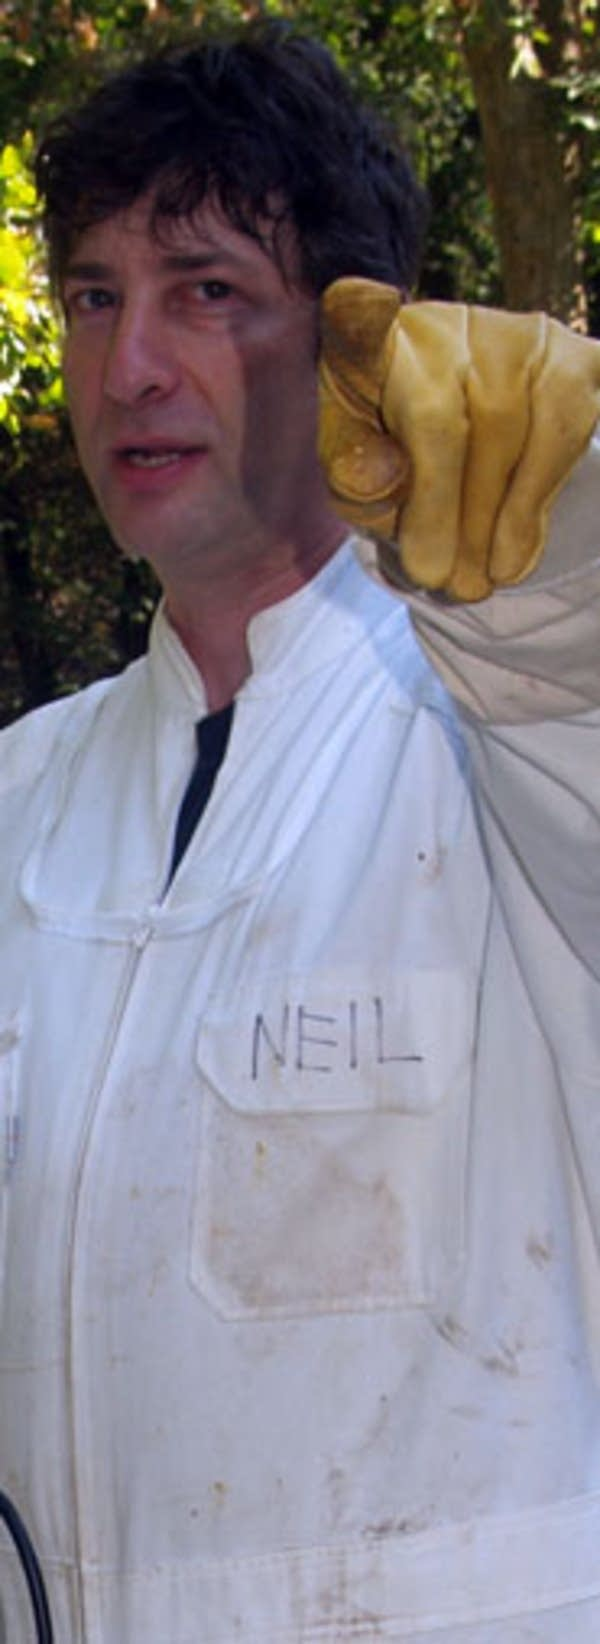 Neil pointing